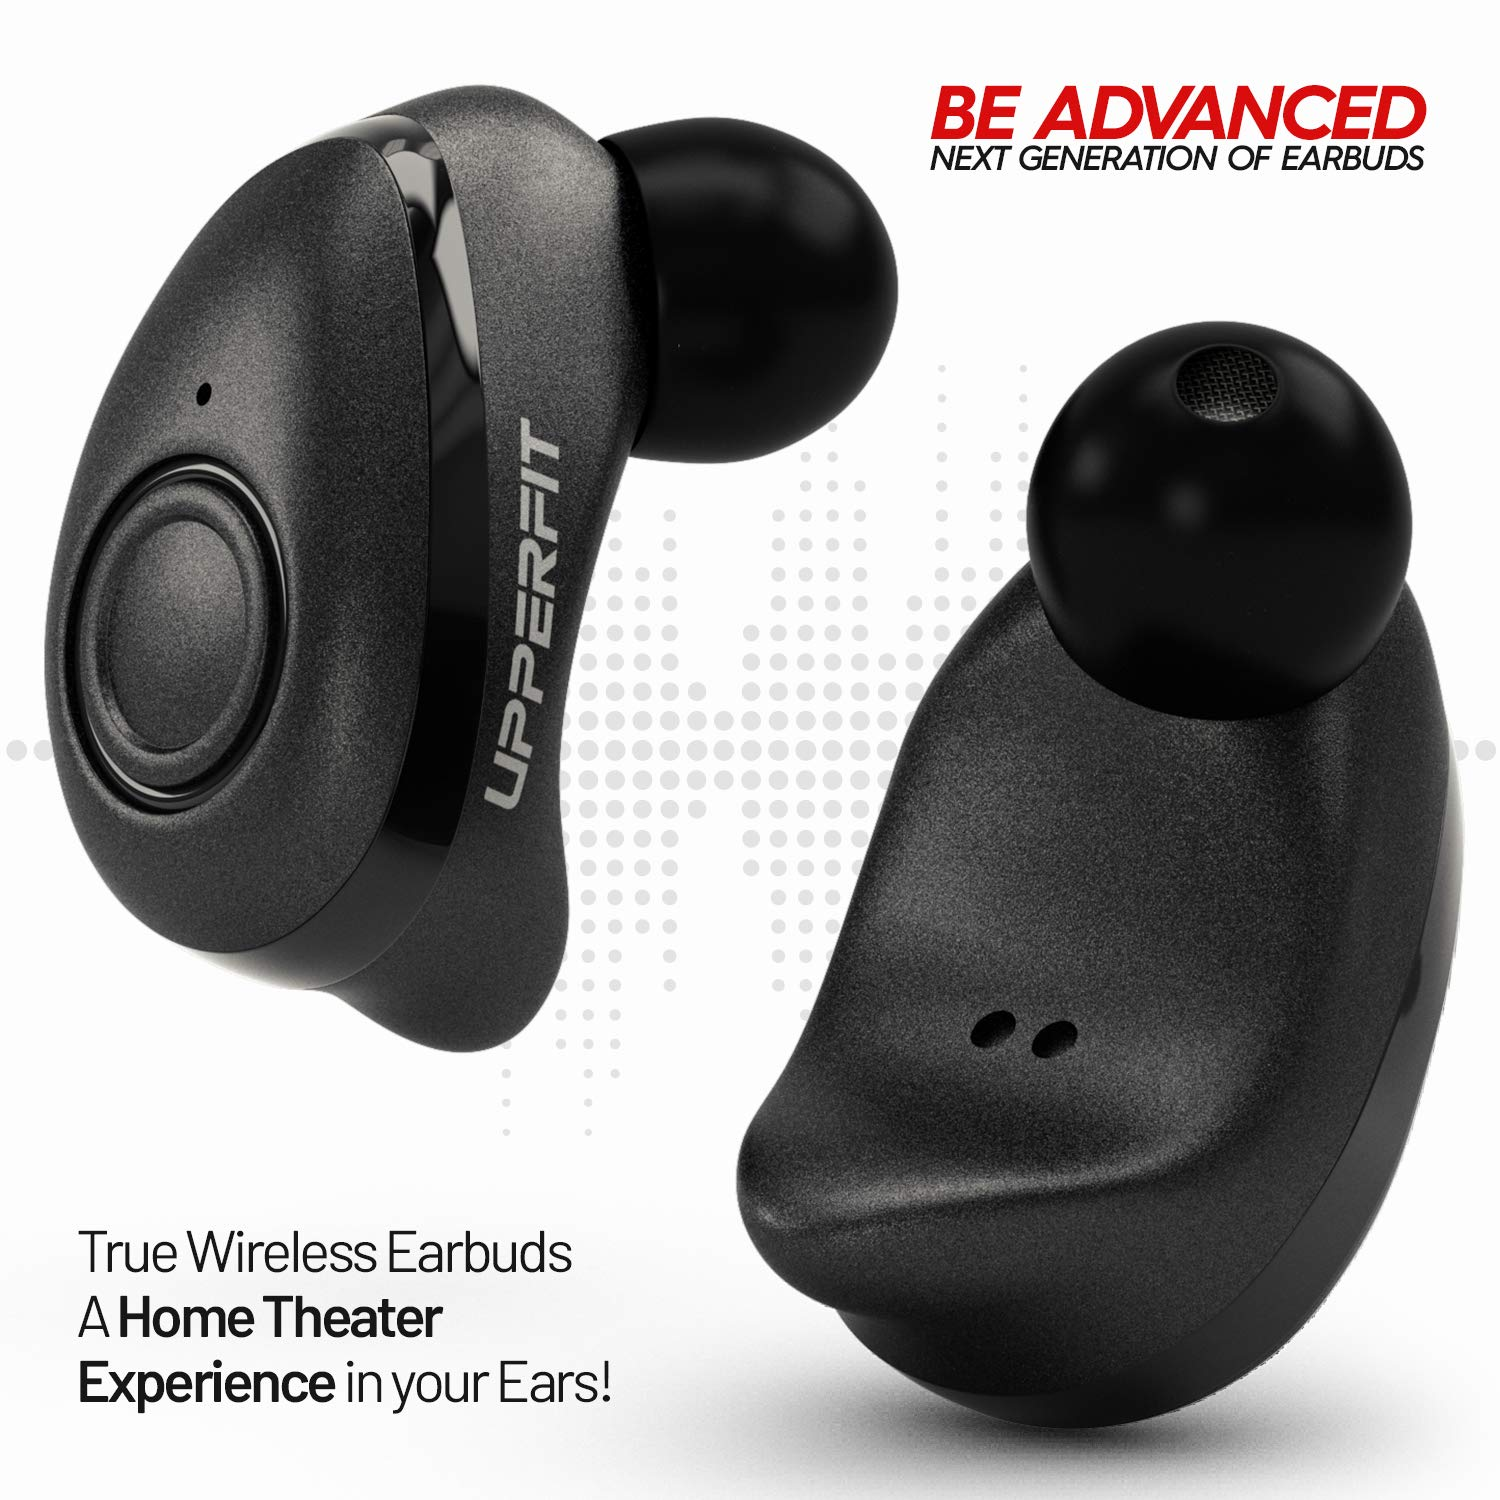 True Wireless Earbuds Headphones, Superior 3D Stereo Sound 5 0 Mini Totally  Wireless in Ear Earbuds, 18Hr Play Time, SweatProof Sports Earphones